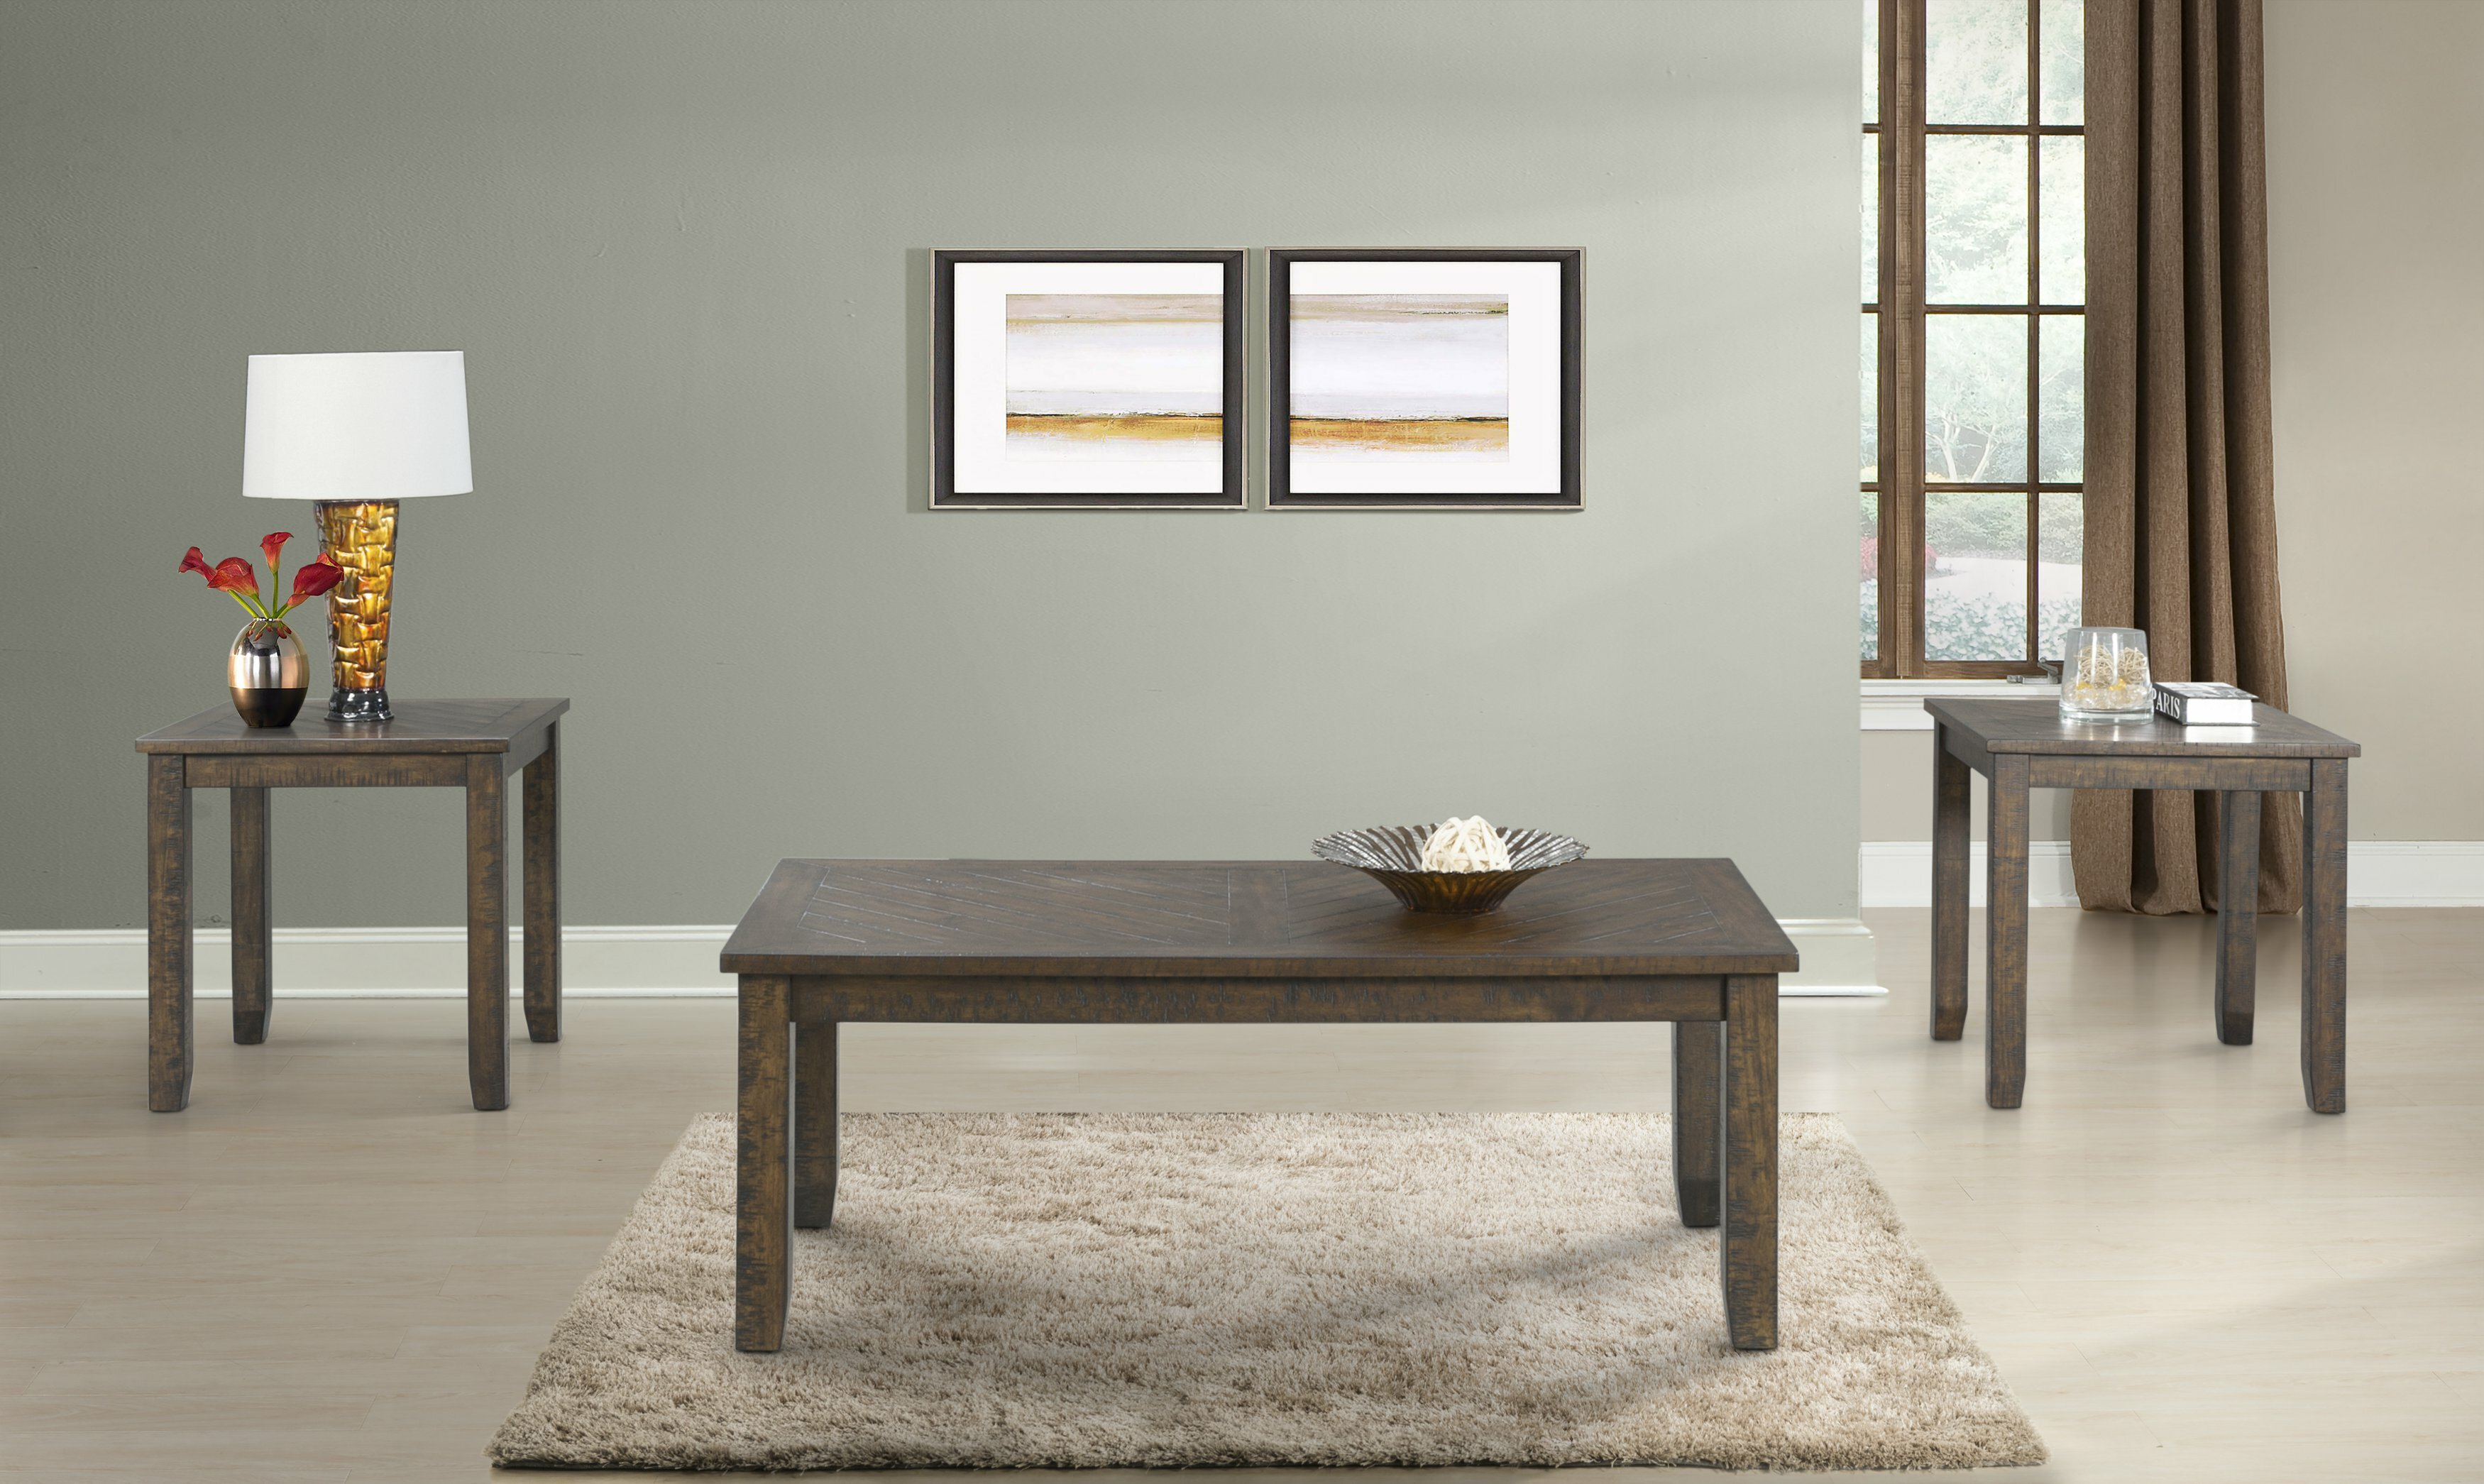 Laurel Foundry Modern Farmhouse Dearing Occasional 3 Piece Coffee Table Set | Wayfair & Laurel Foundry Modern Farmhouse Dearing Occasional 3 Piece Coffee ...